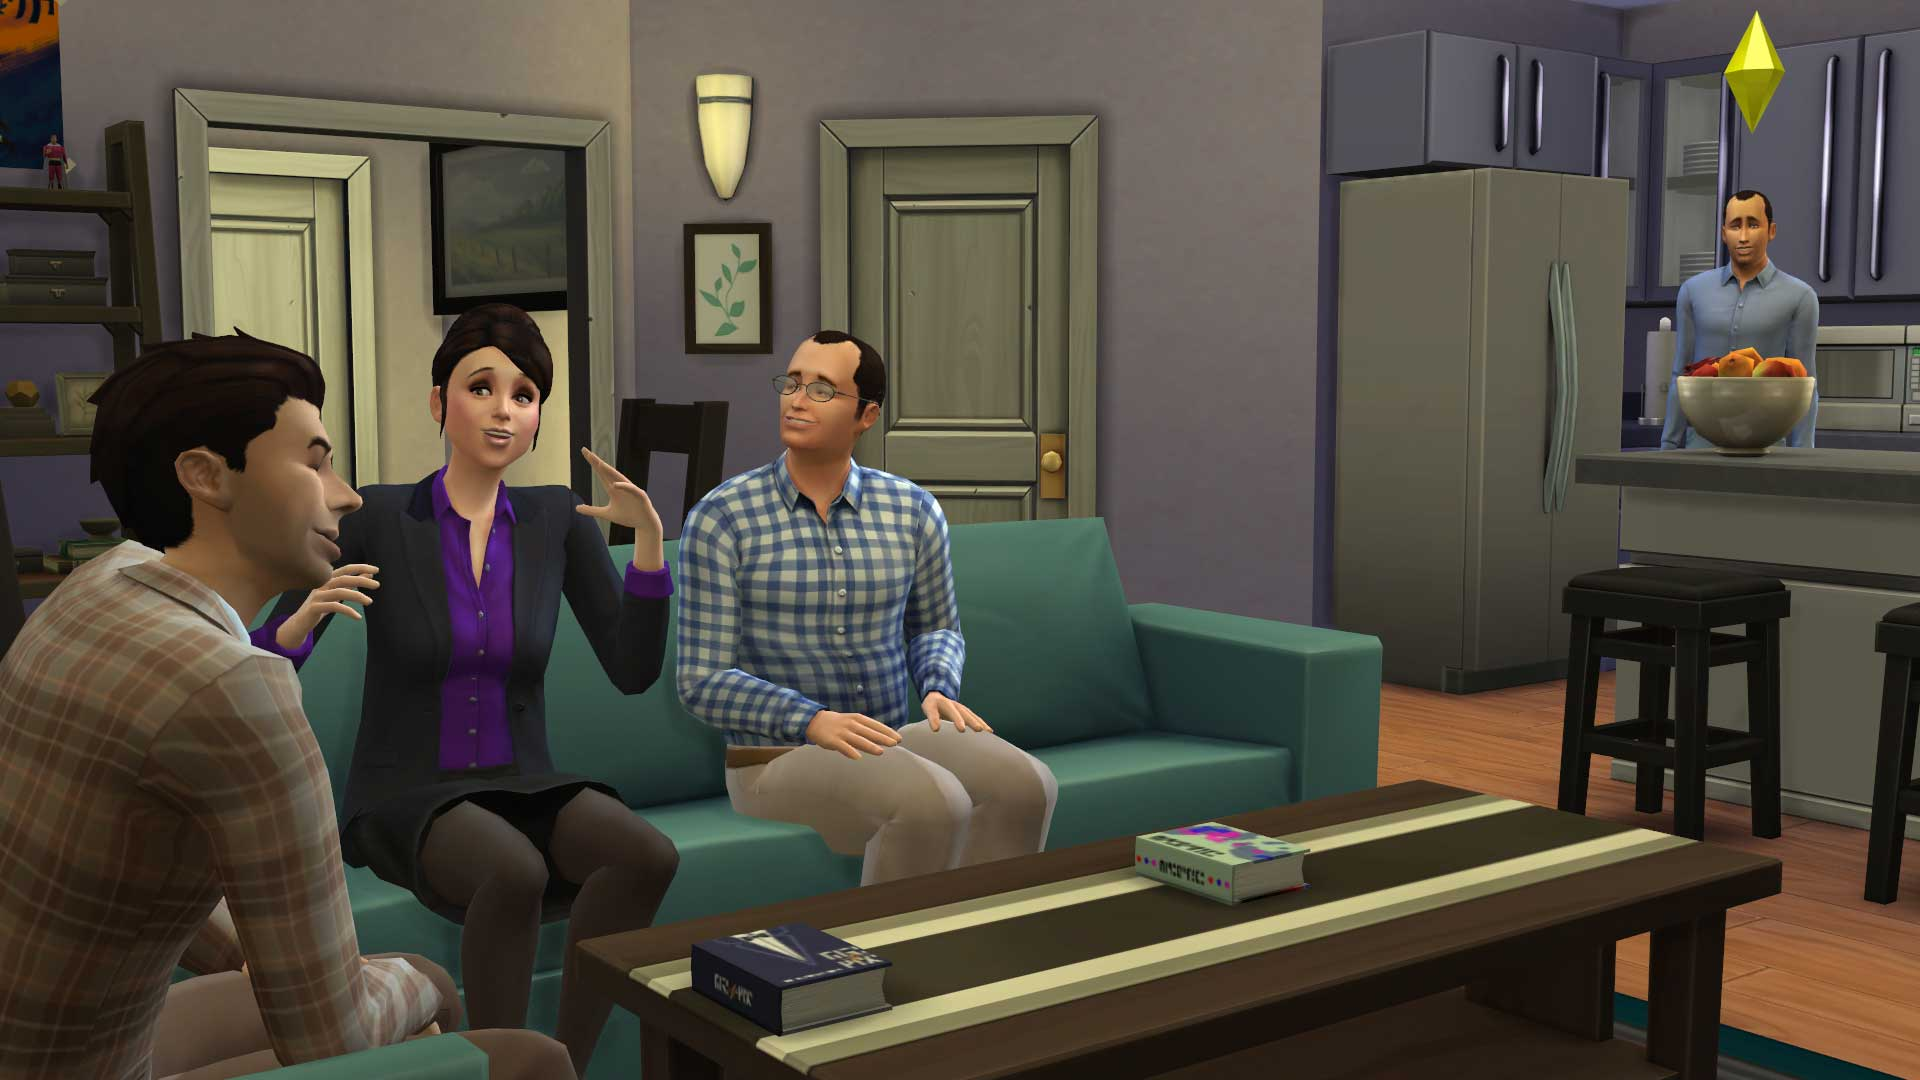 the_sims_4_seinfeld_1